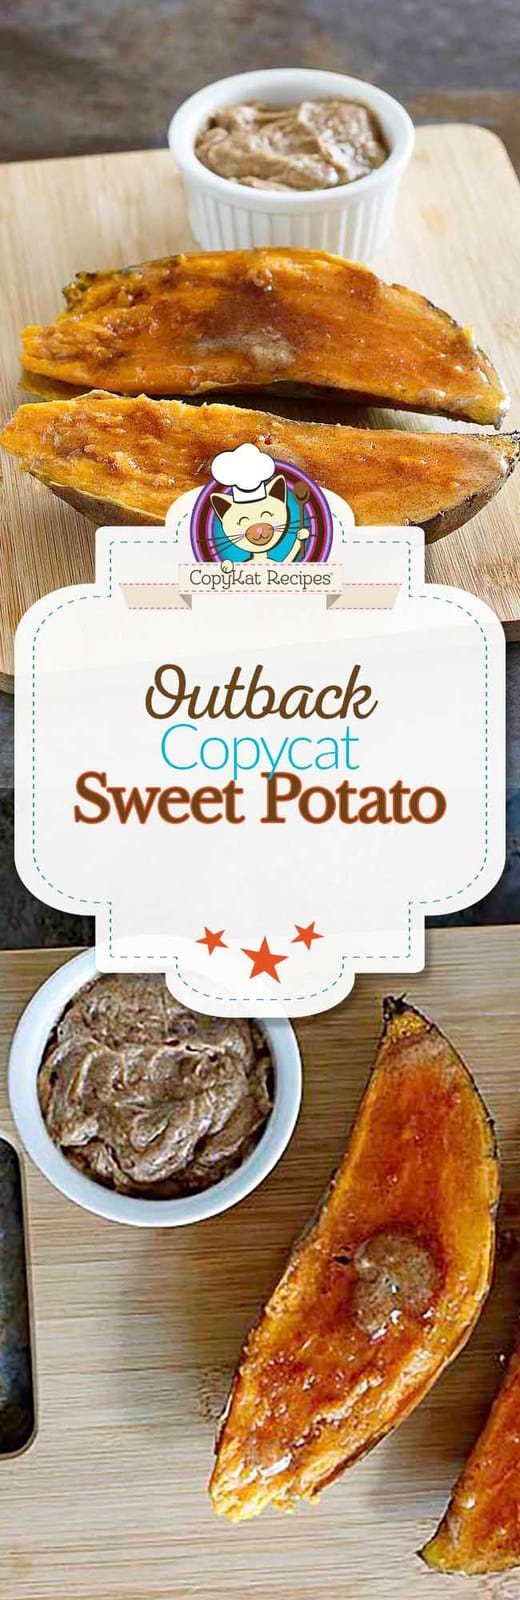 You can recreate the Outback Steakhouse  Baked Sweet Potato at home.  #copycat #sweetpotato #recipe